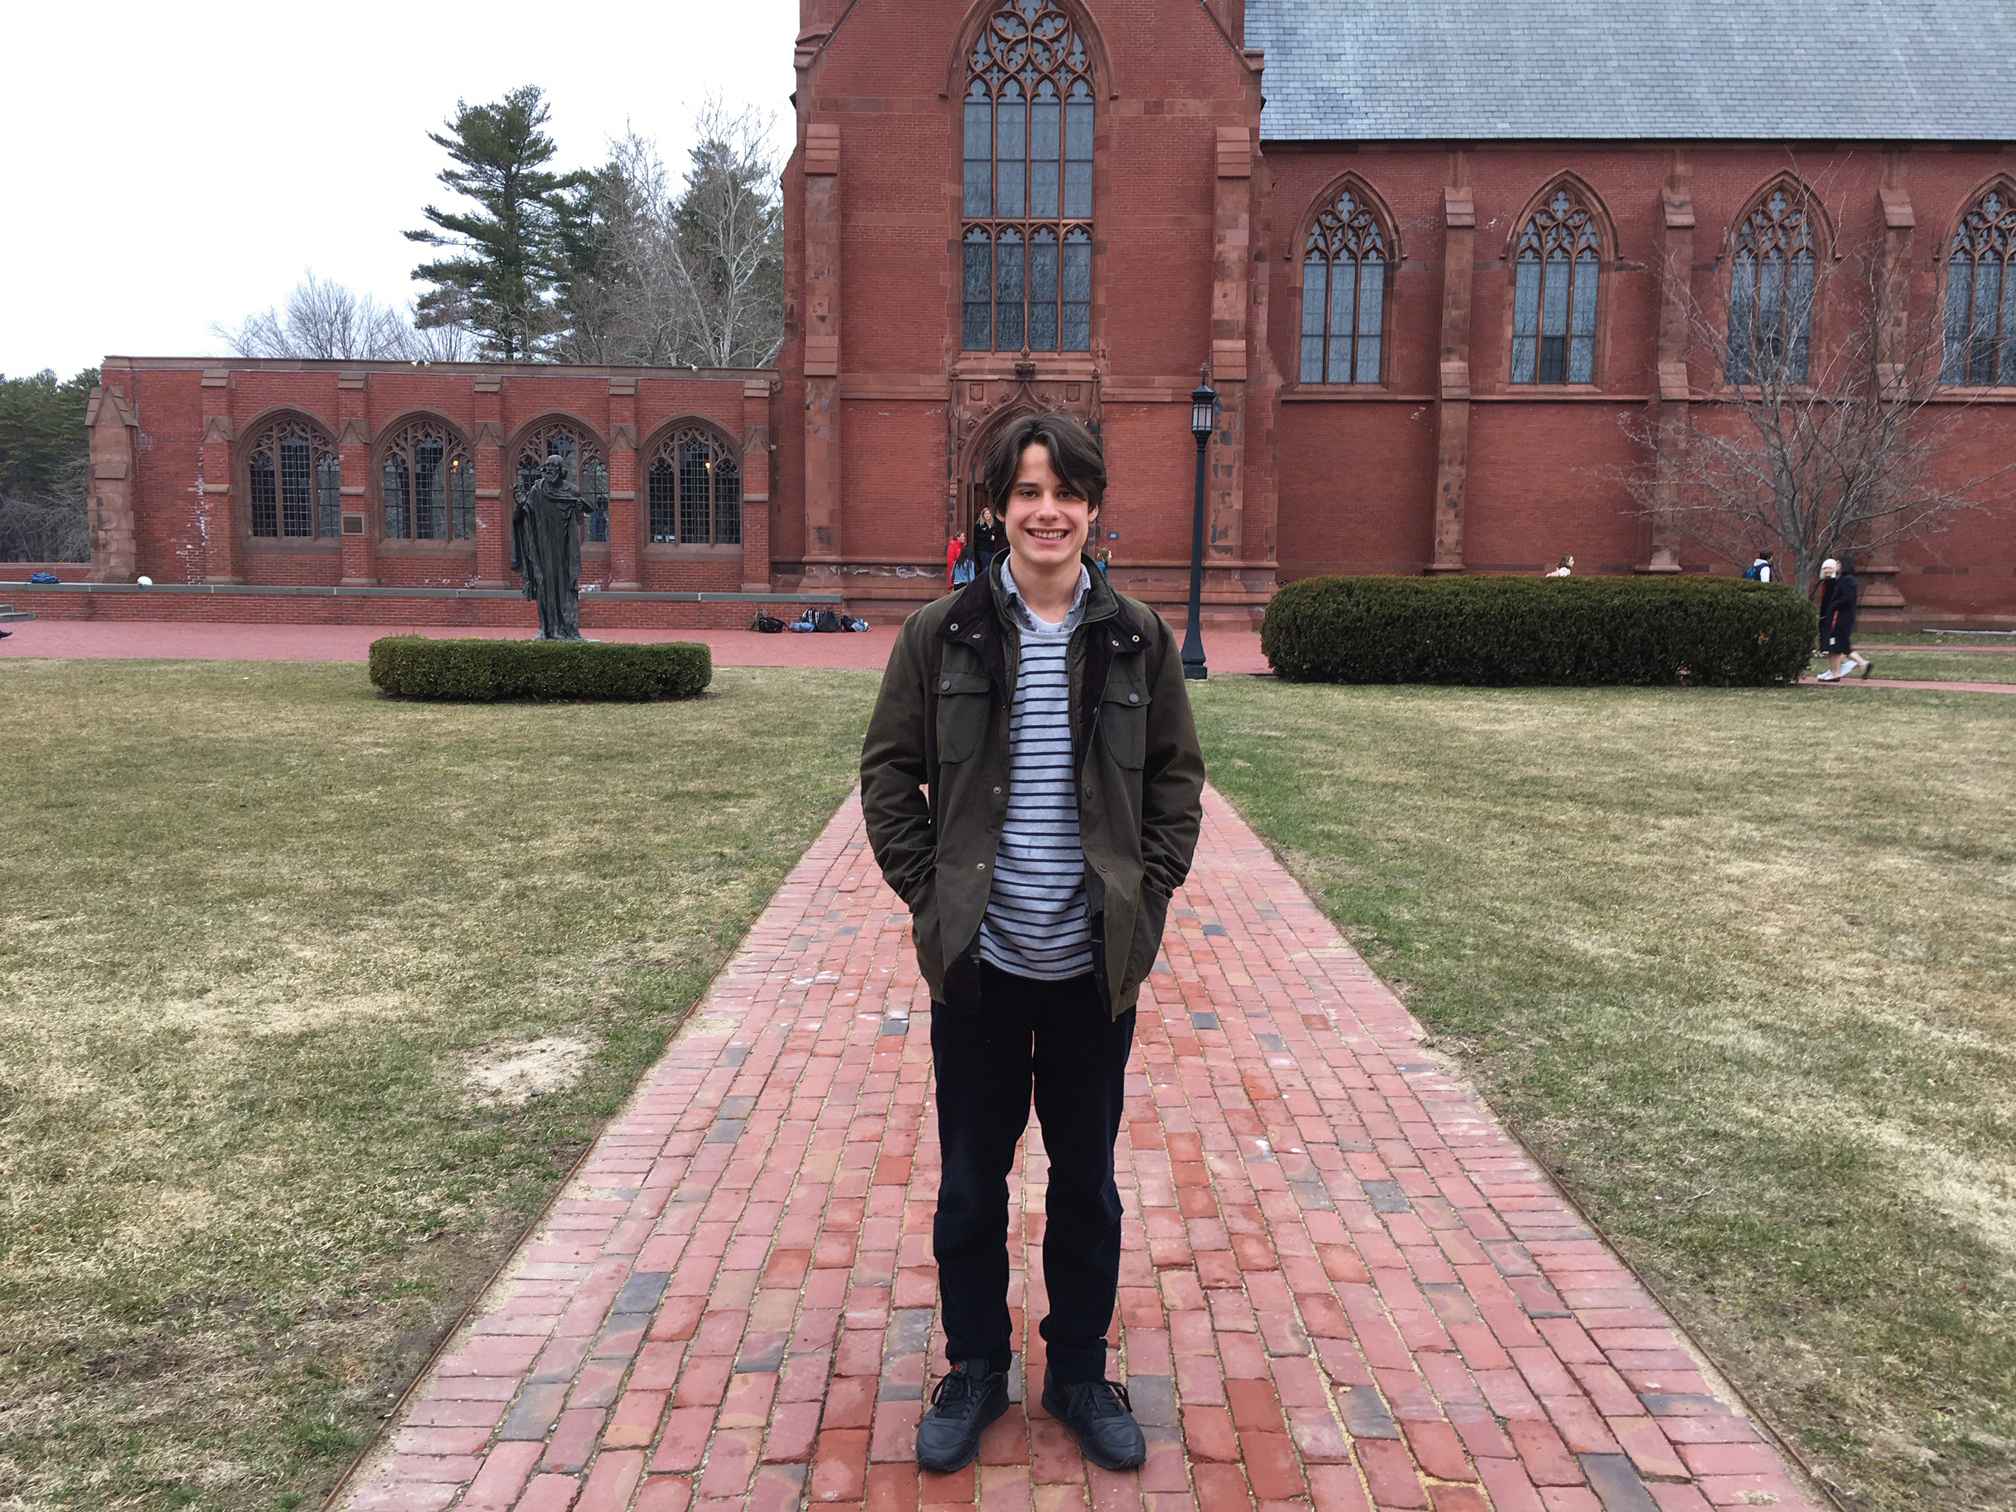 Maxwell Benster, grandson of Philip Price '52, studied at SPS this spring as part of an exchange program with Eton College.